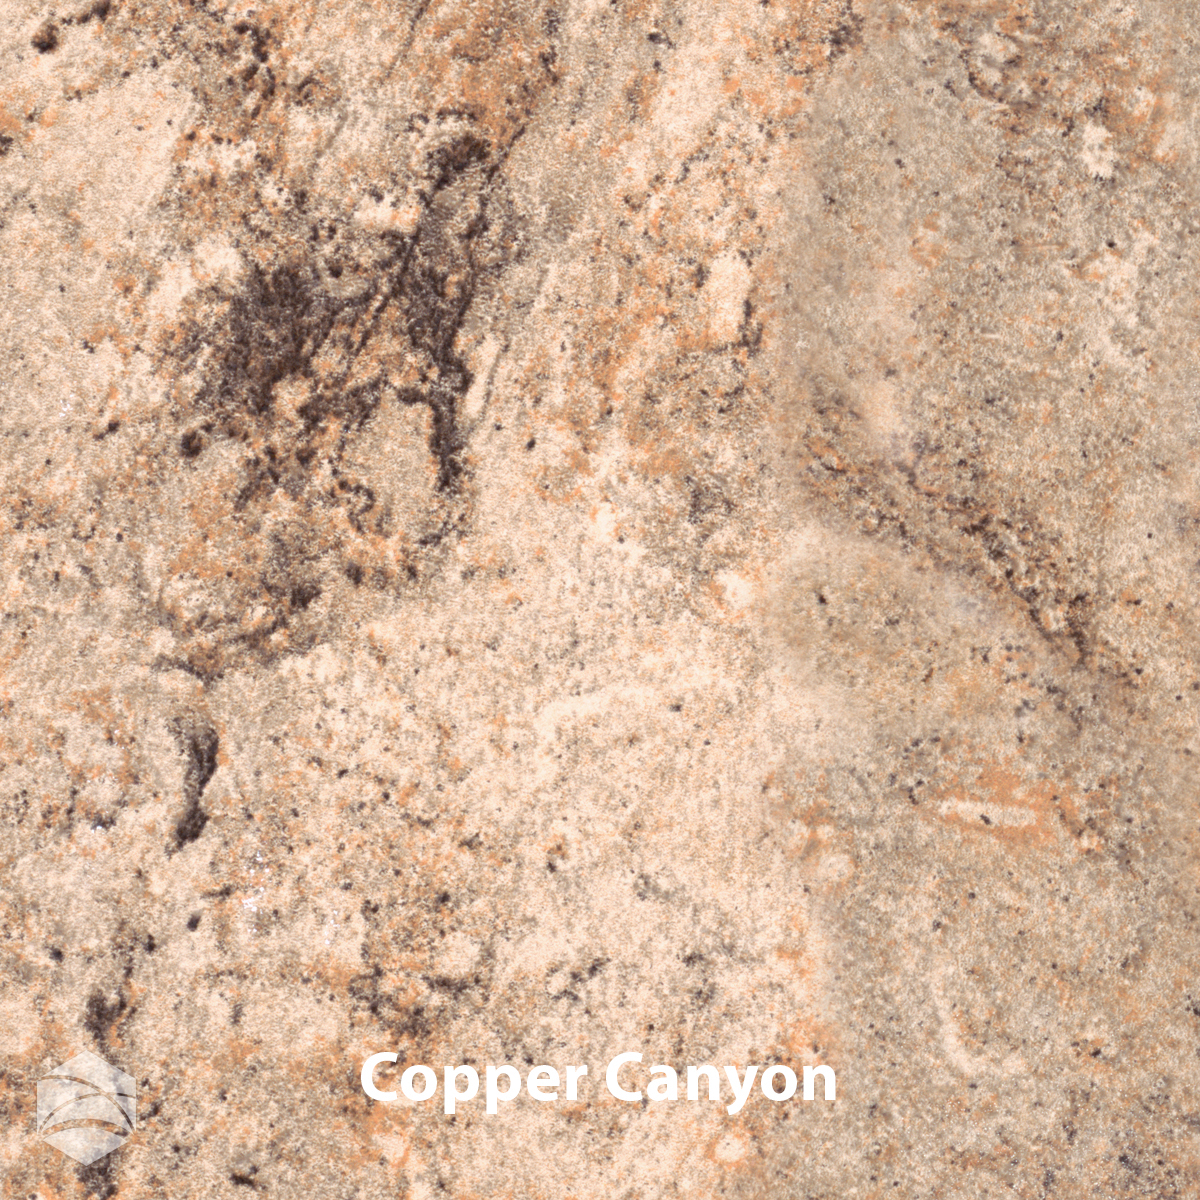 Copper Canyon_V2_12x12.jpg